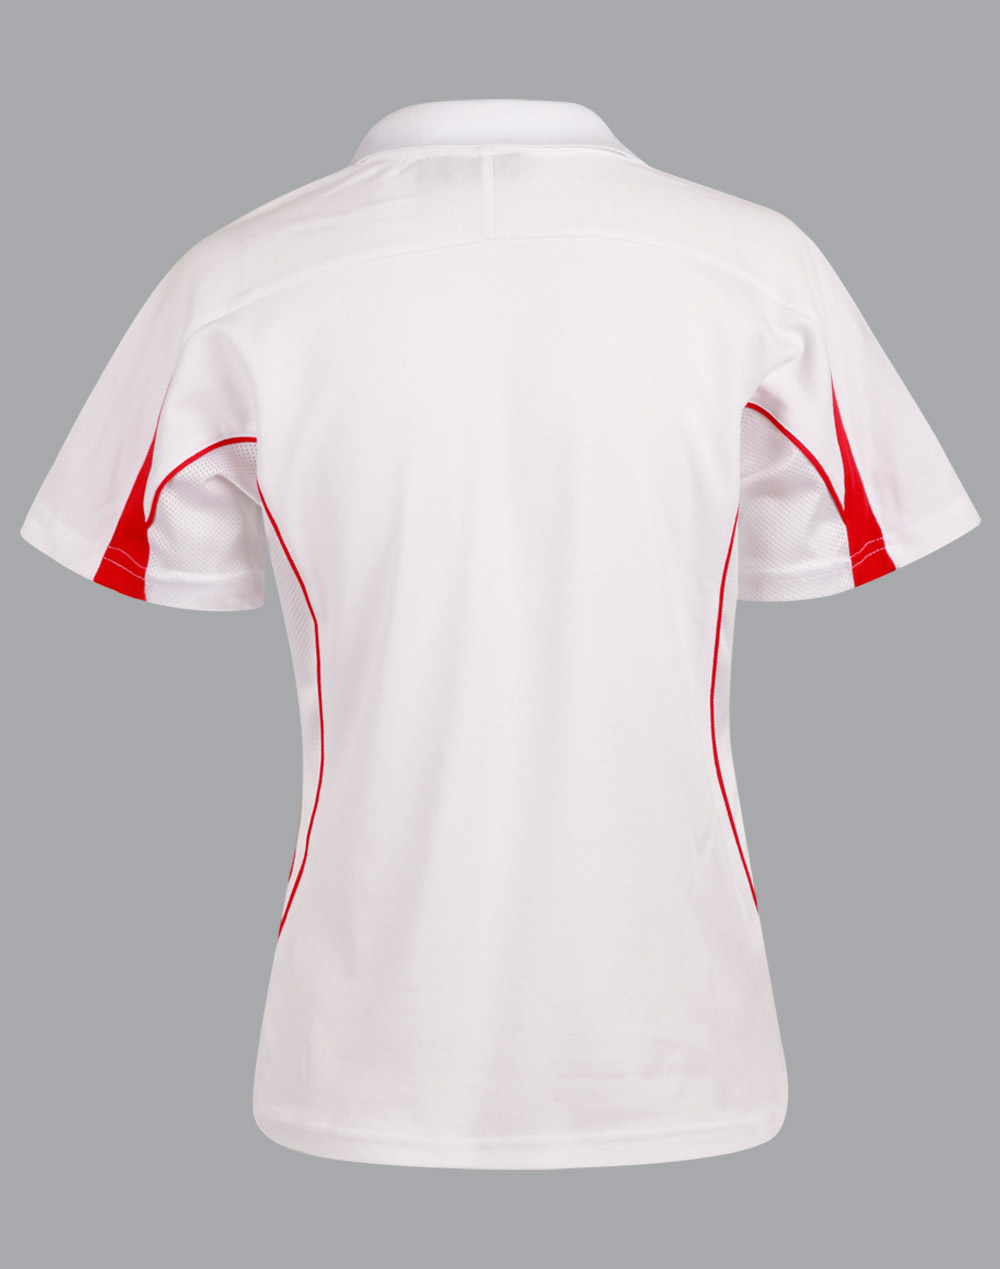 https://s3-ap-southeast-1.amazonaws.com/ws-imgs/POLOSHIRTS/PS54_WhiteRed_Back.jpg